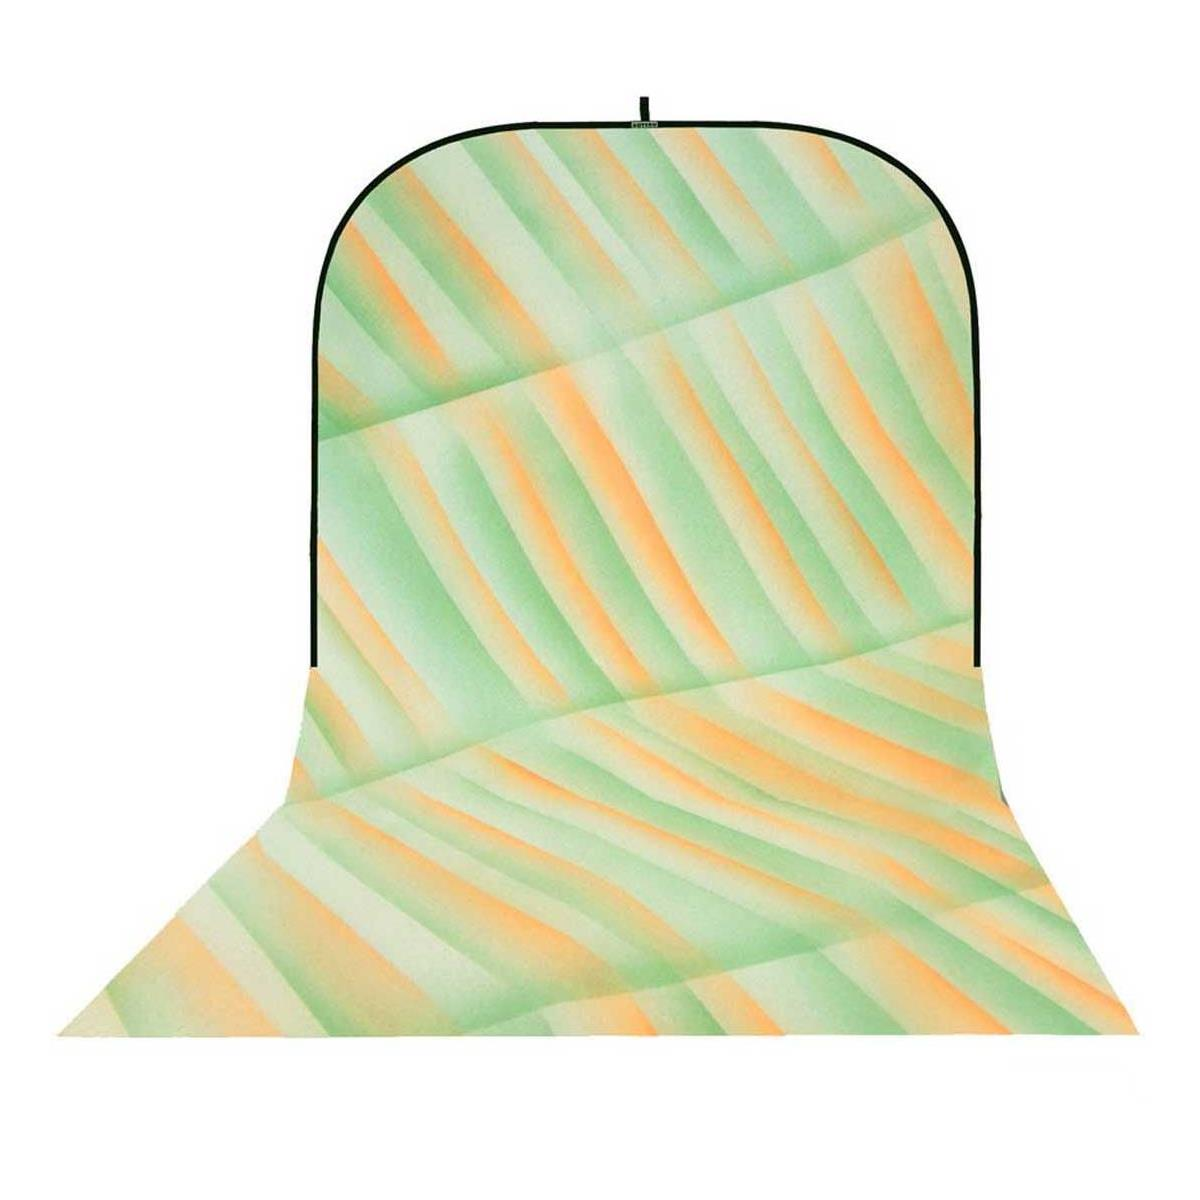 Adorama Camera Botero Backgrounds 054 Supercollapsible 8x16 1200x1200